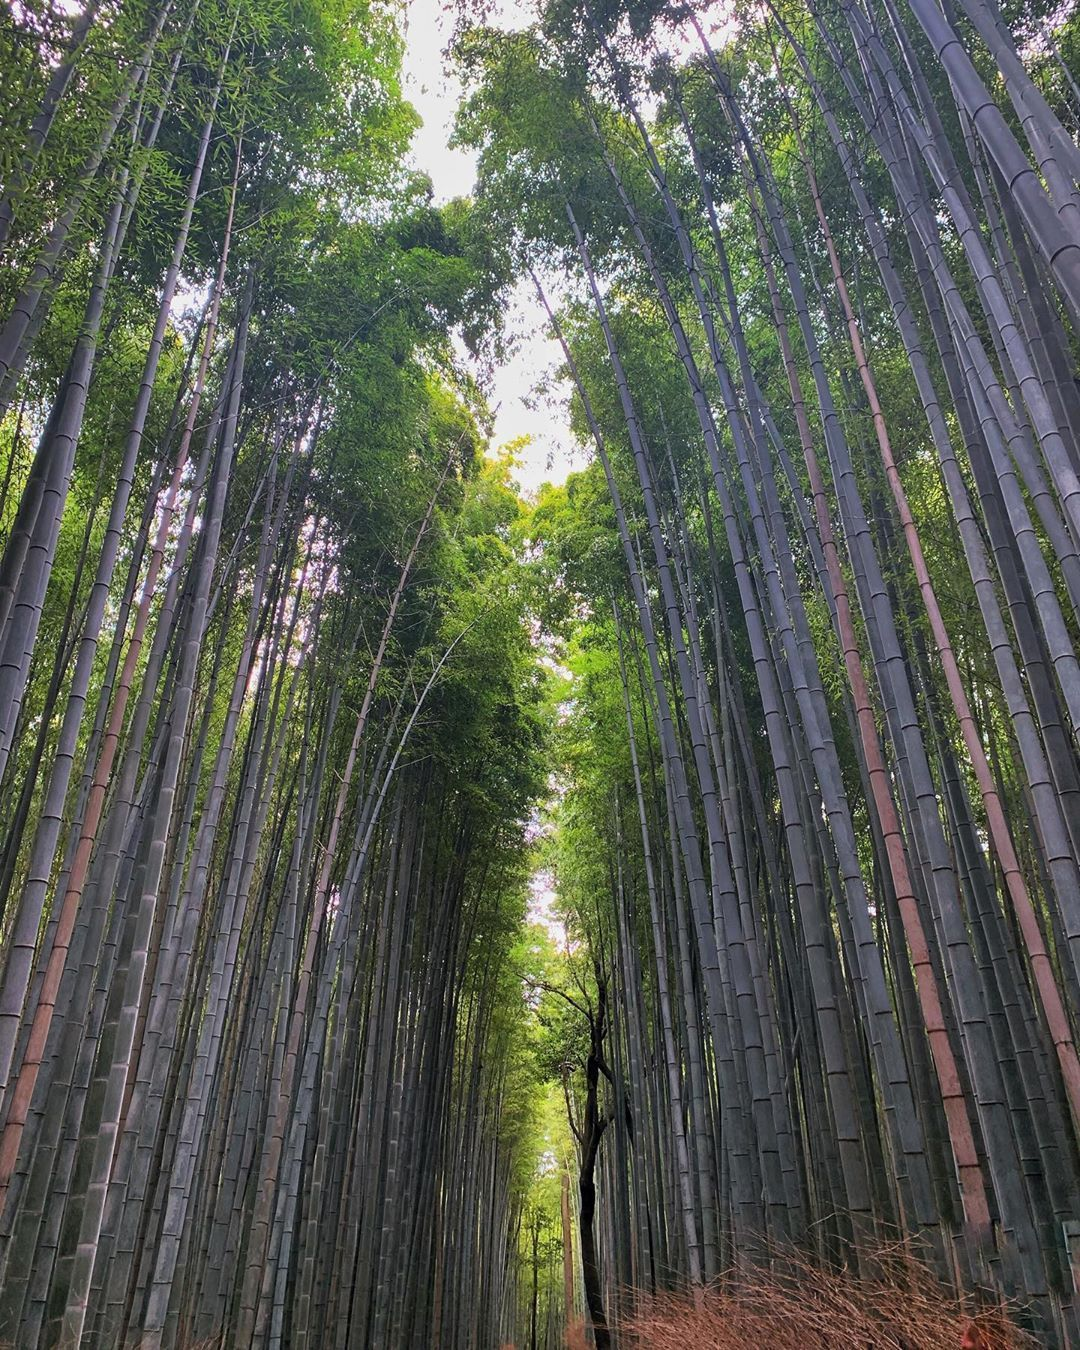 #arashiyamabambooforest #kyoto #arashiyama #arashiyamakyoto #kyototravel #amazingnature #amazingnaturepics #travel #photography #photo #naturephotography #nature_good #wild_nature #nature_worldwide_trees #photographie #japan🇯🇵 #japanesenature #visitjapan #giappone #viaggiare #viaggiaresempre #travelgram #travelphotography #pcoftheday #nature_perfection #japaneseculture %2